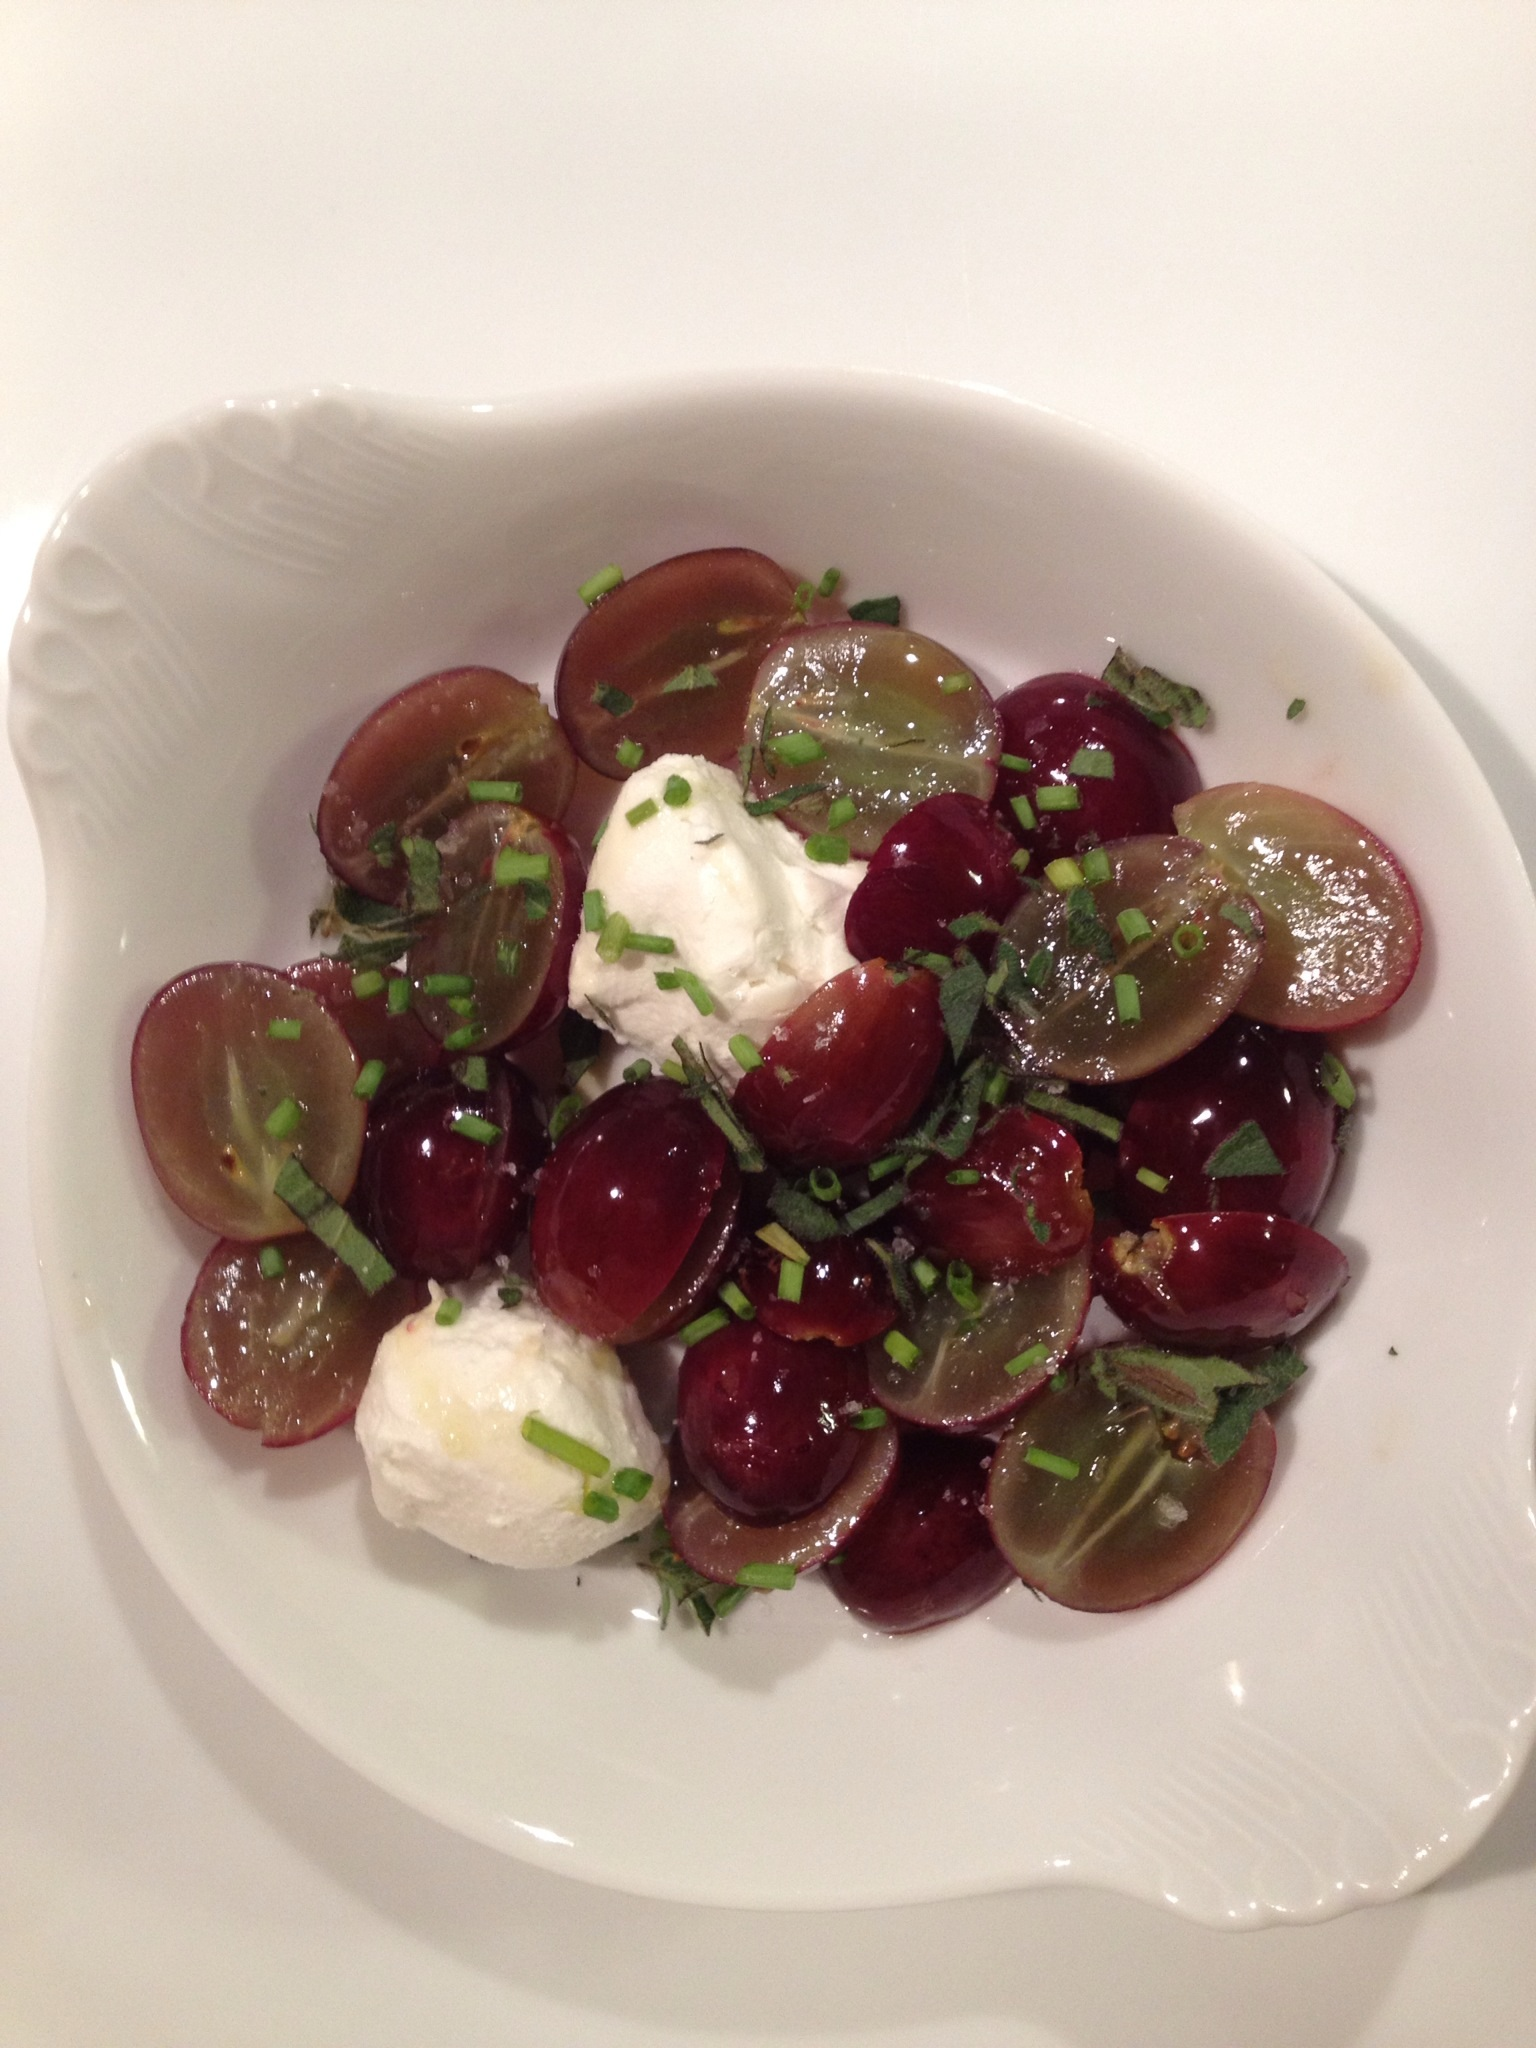 Chèvre and sautéed grapes